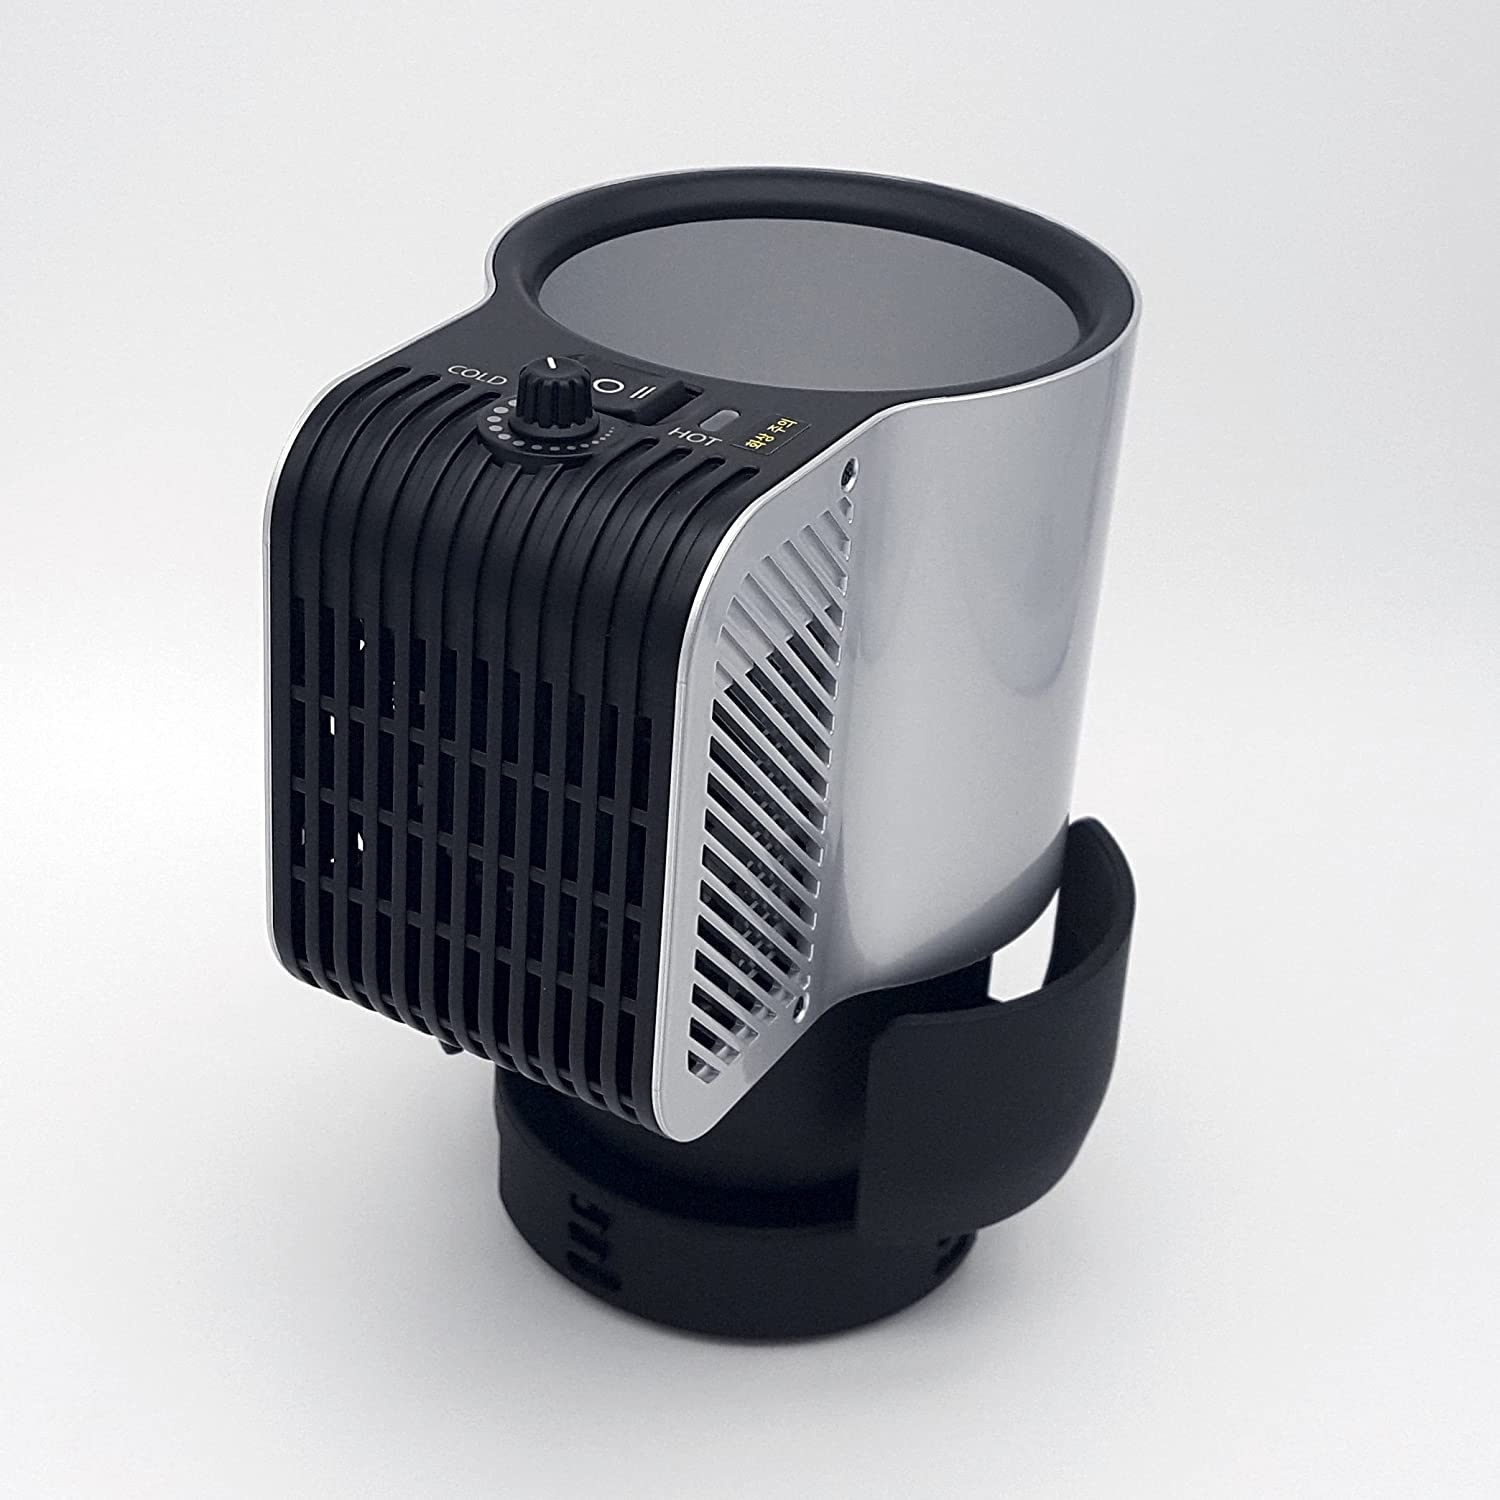 Thermoelectric Cup Holder with Temperature Control LG 12V Vehicle Heating /& Cooling Cup Holder